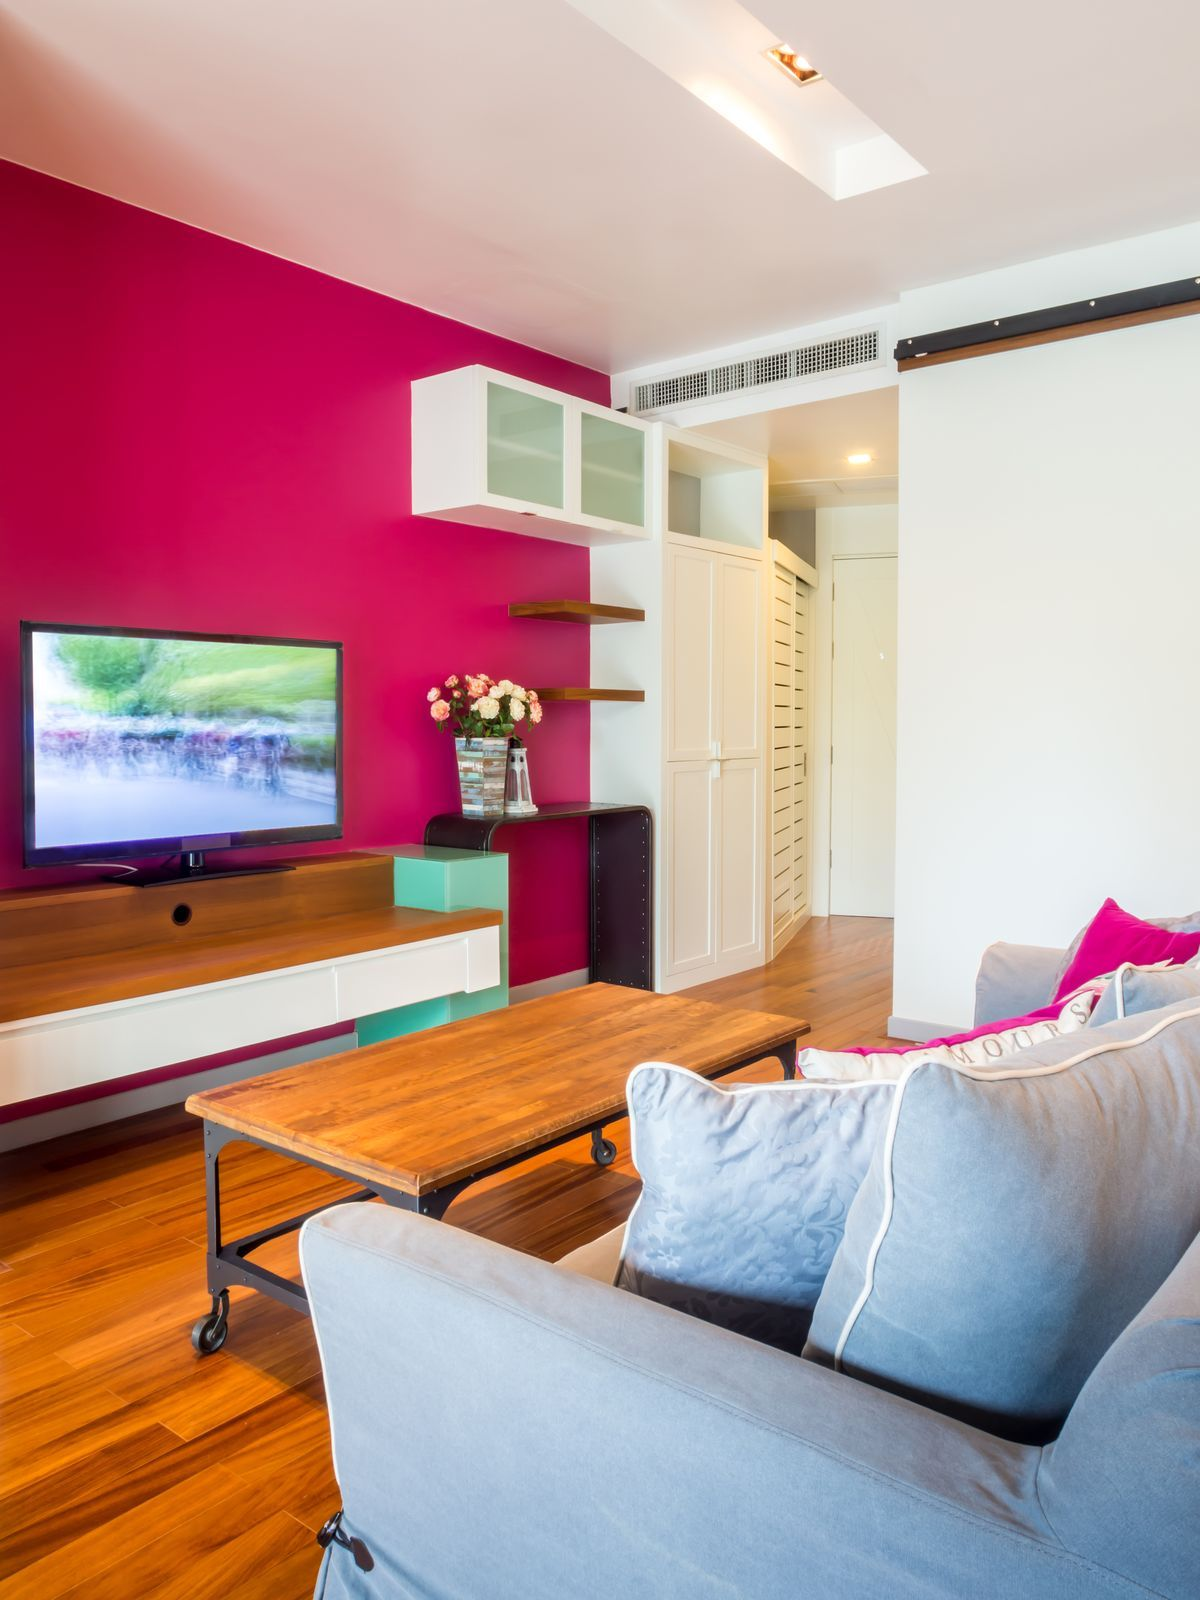 Fuchsia Accent wall in a Living Room